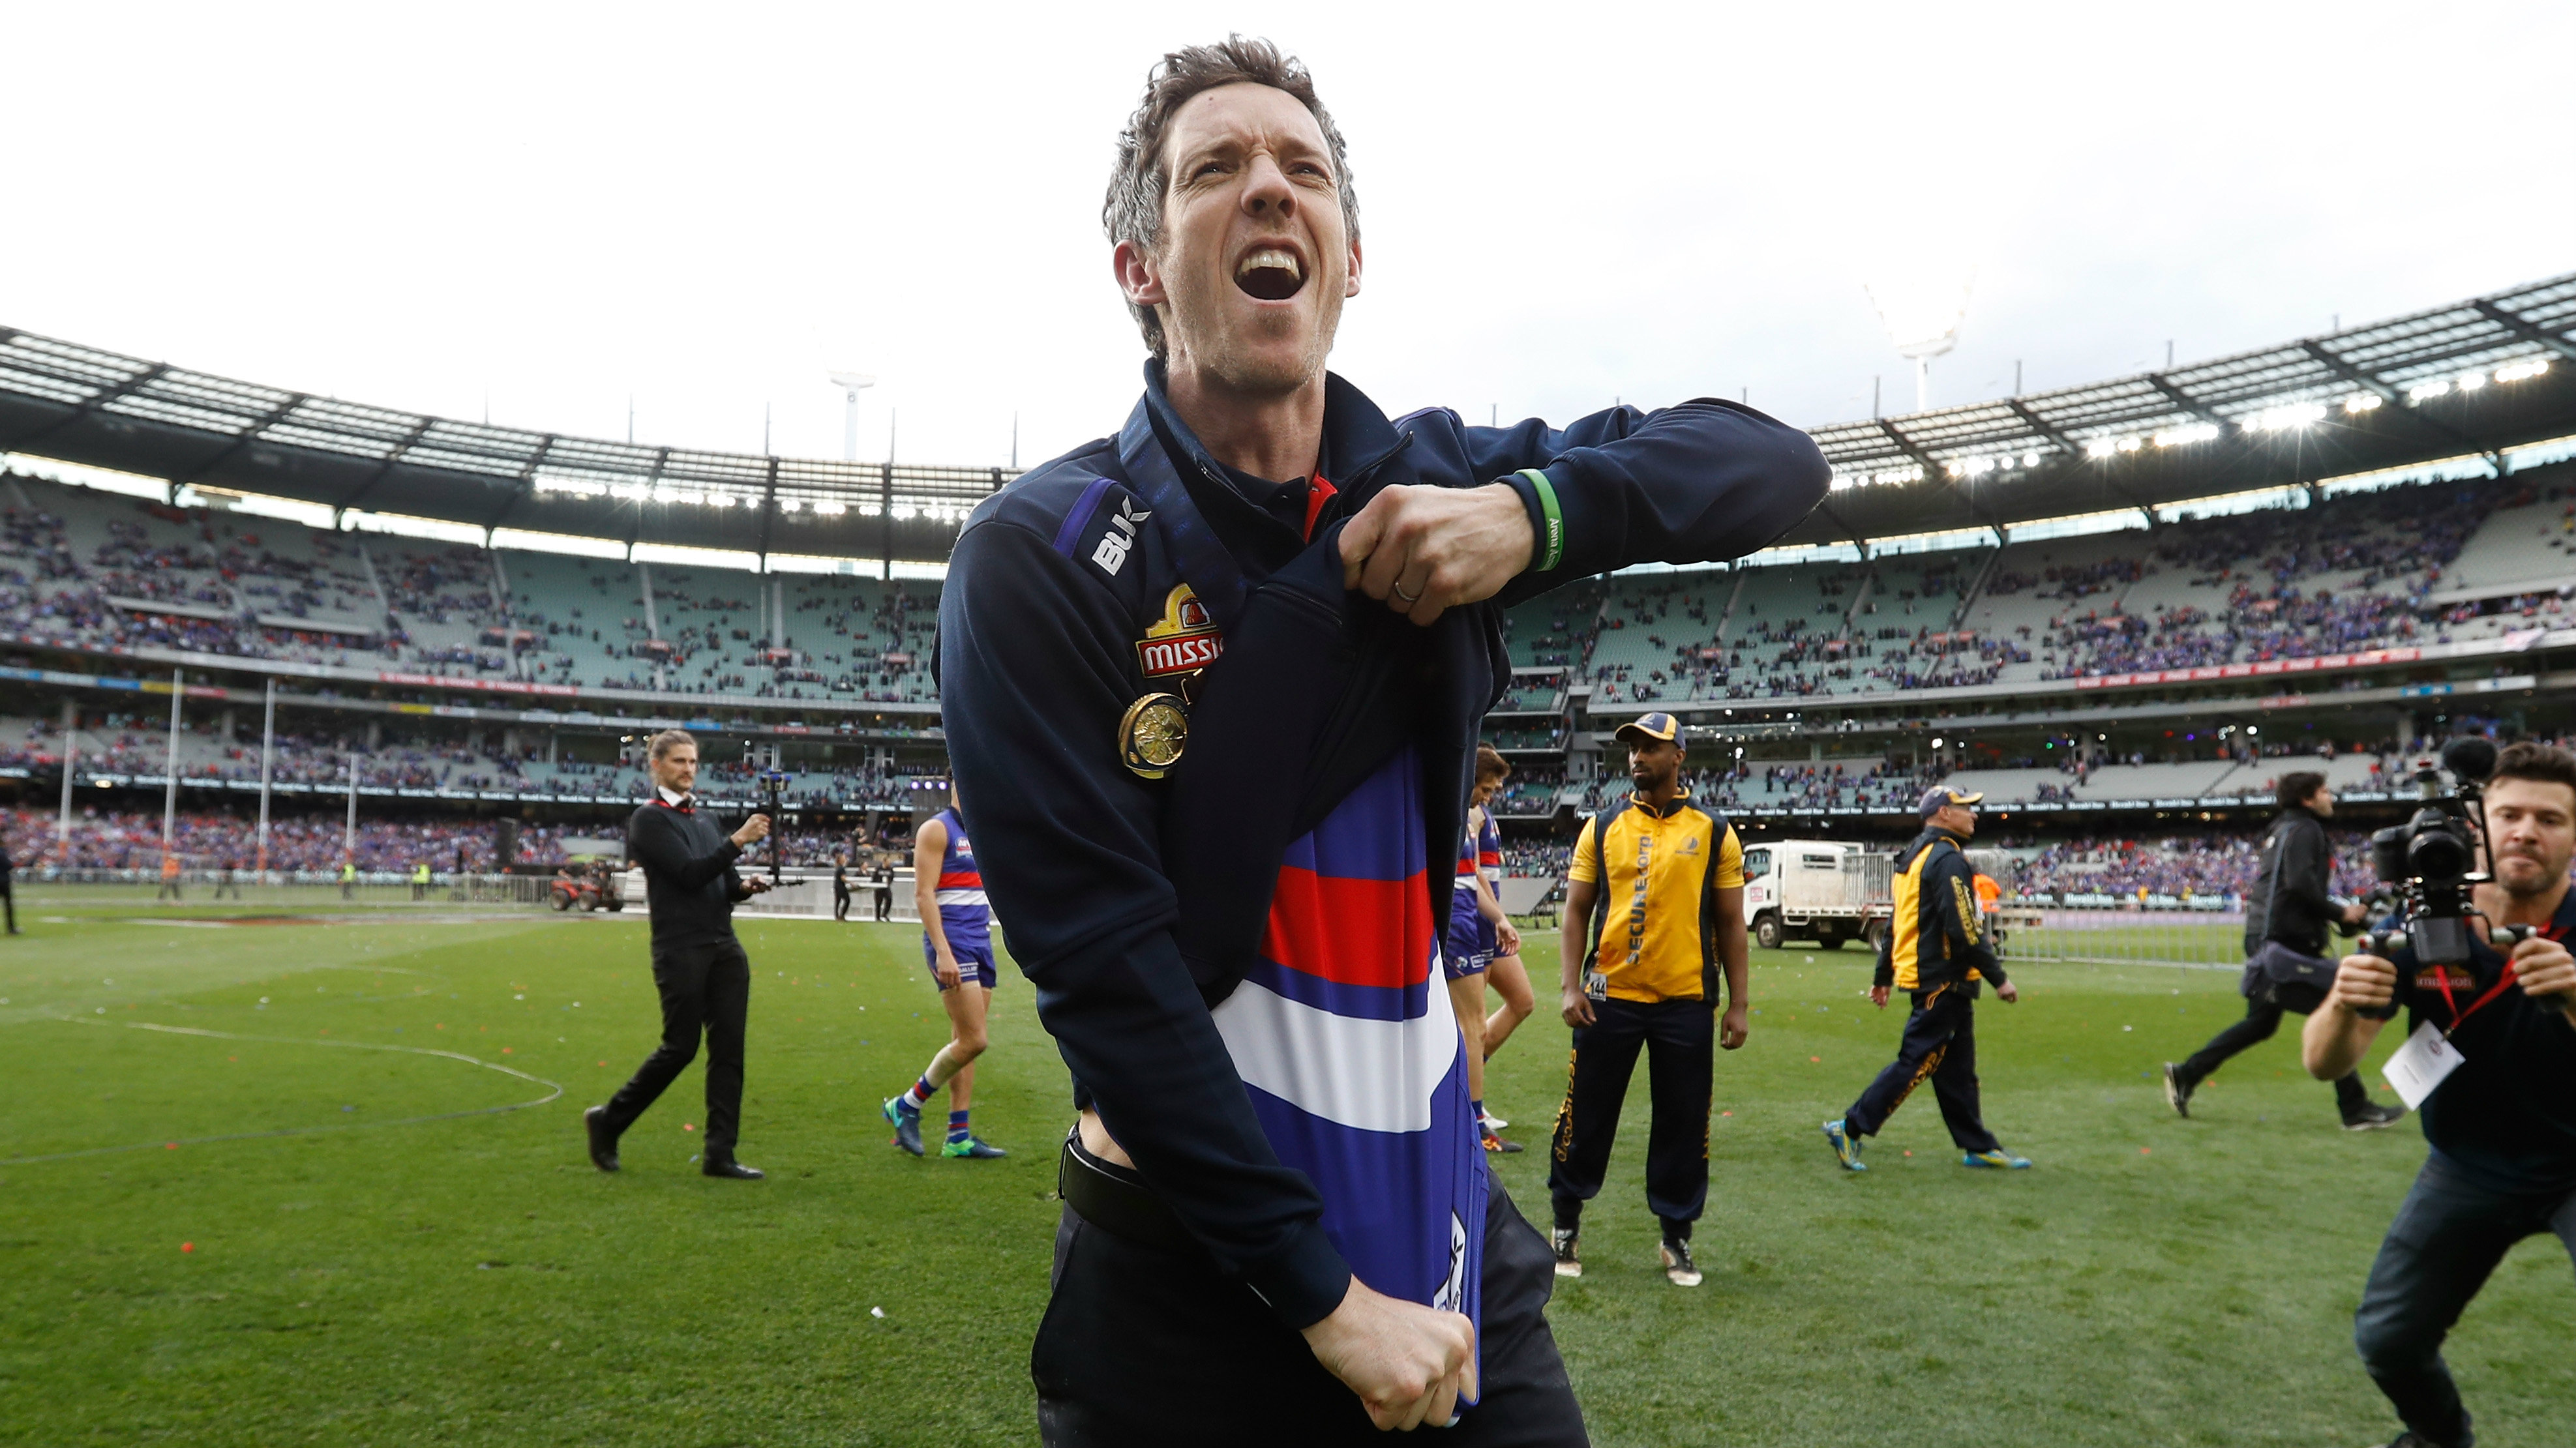 Bob Murphy set to retire at the end of 2017